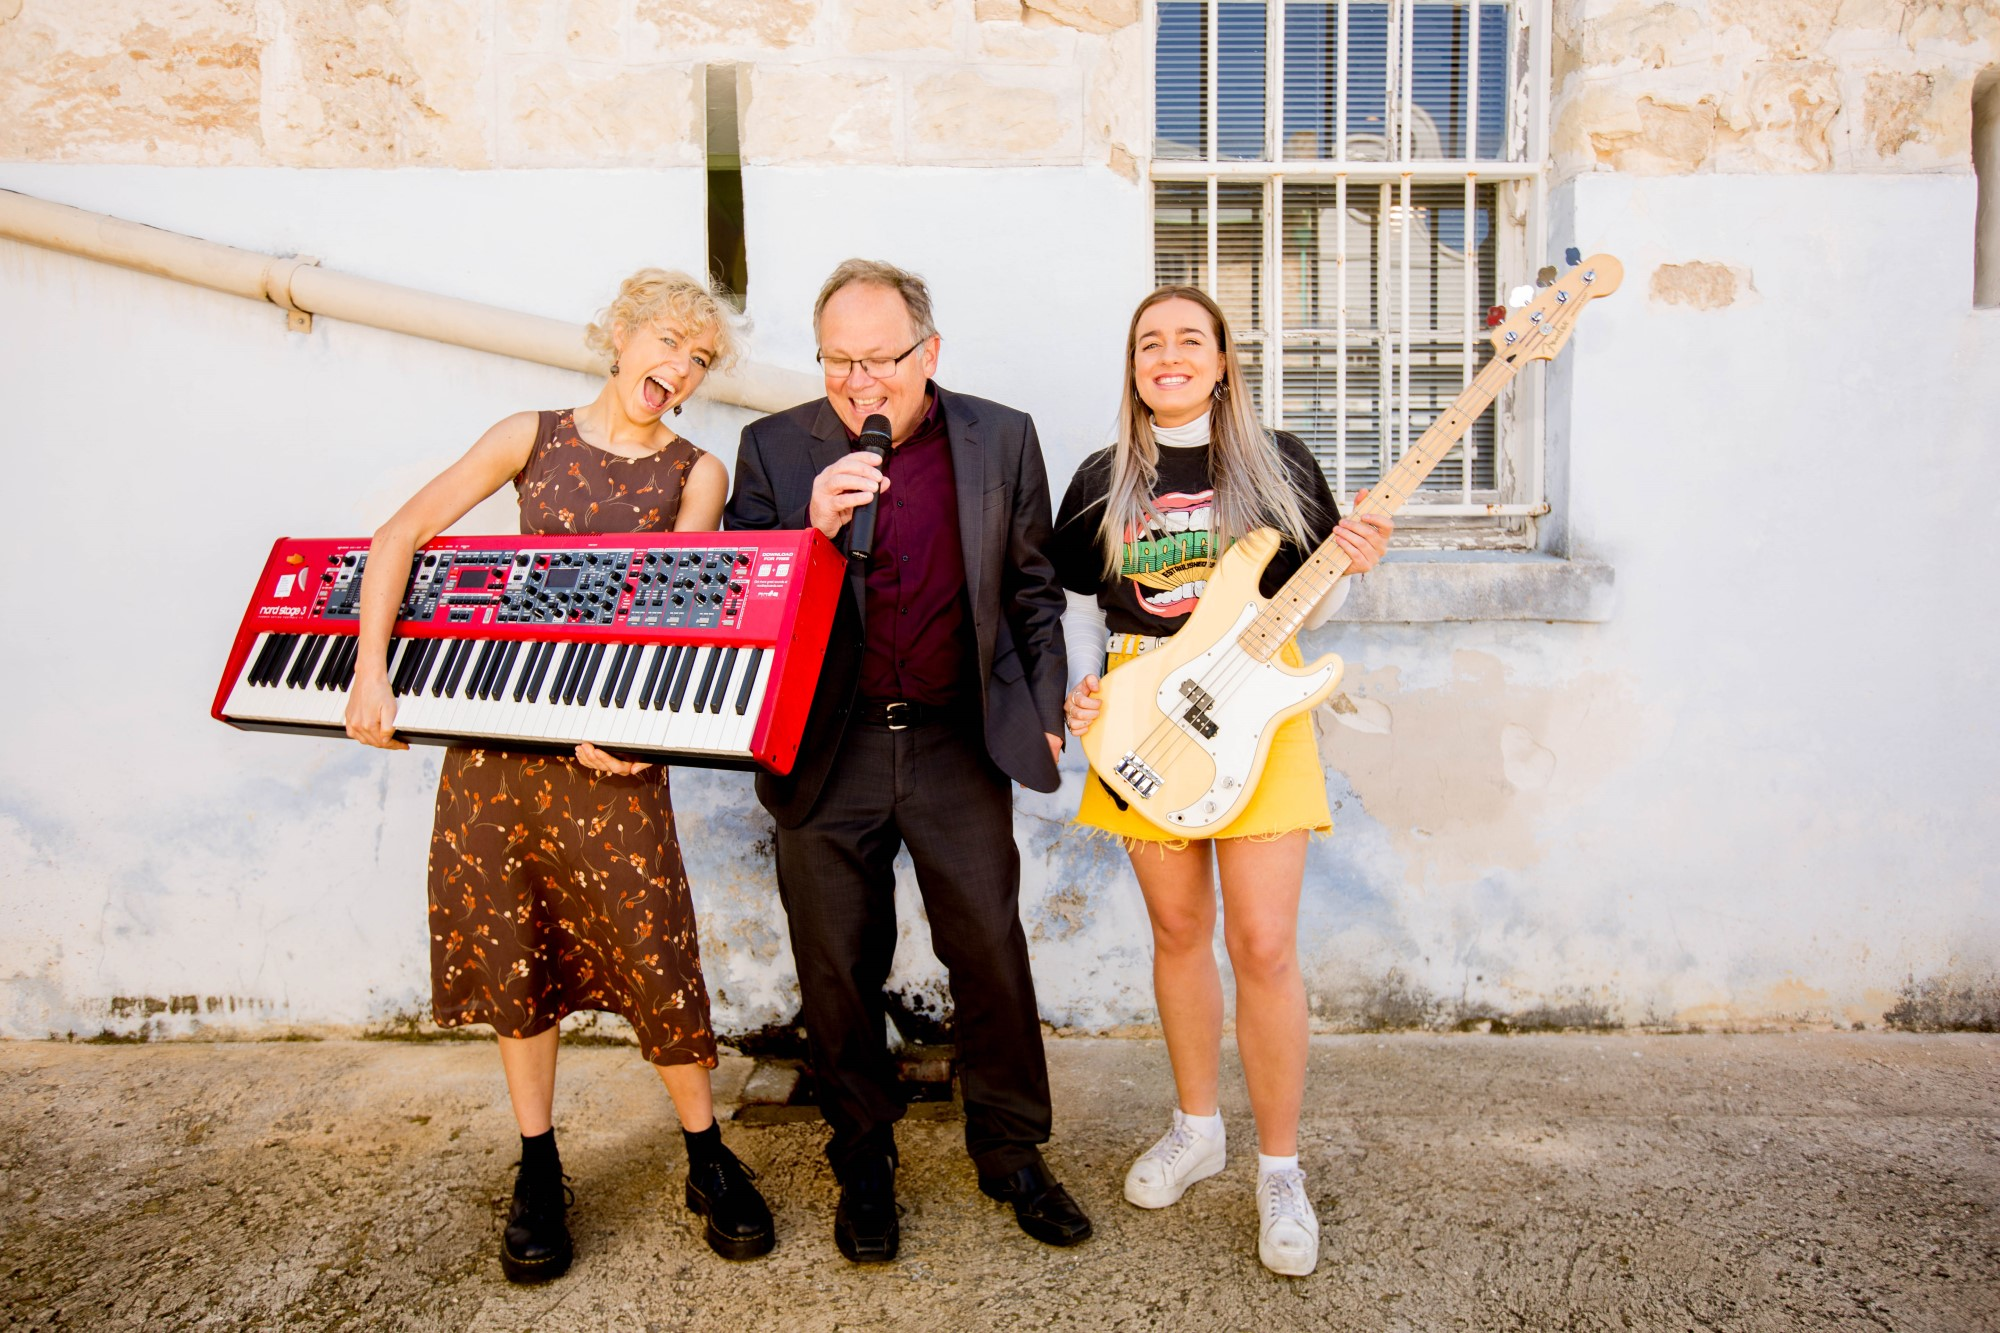 Culture and Arts Minister David Templeman with Ash and Timieka from Perth band Dulcie